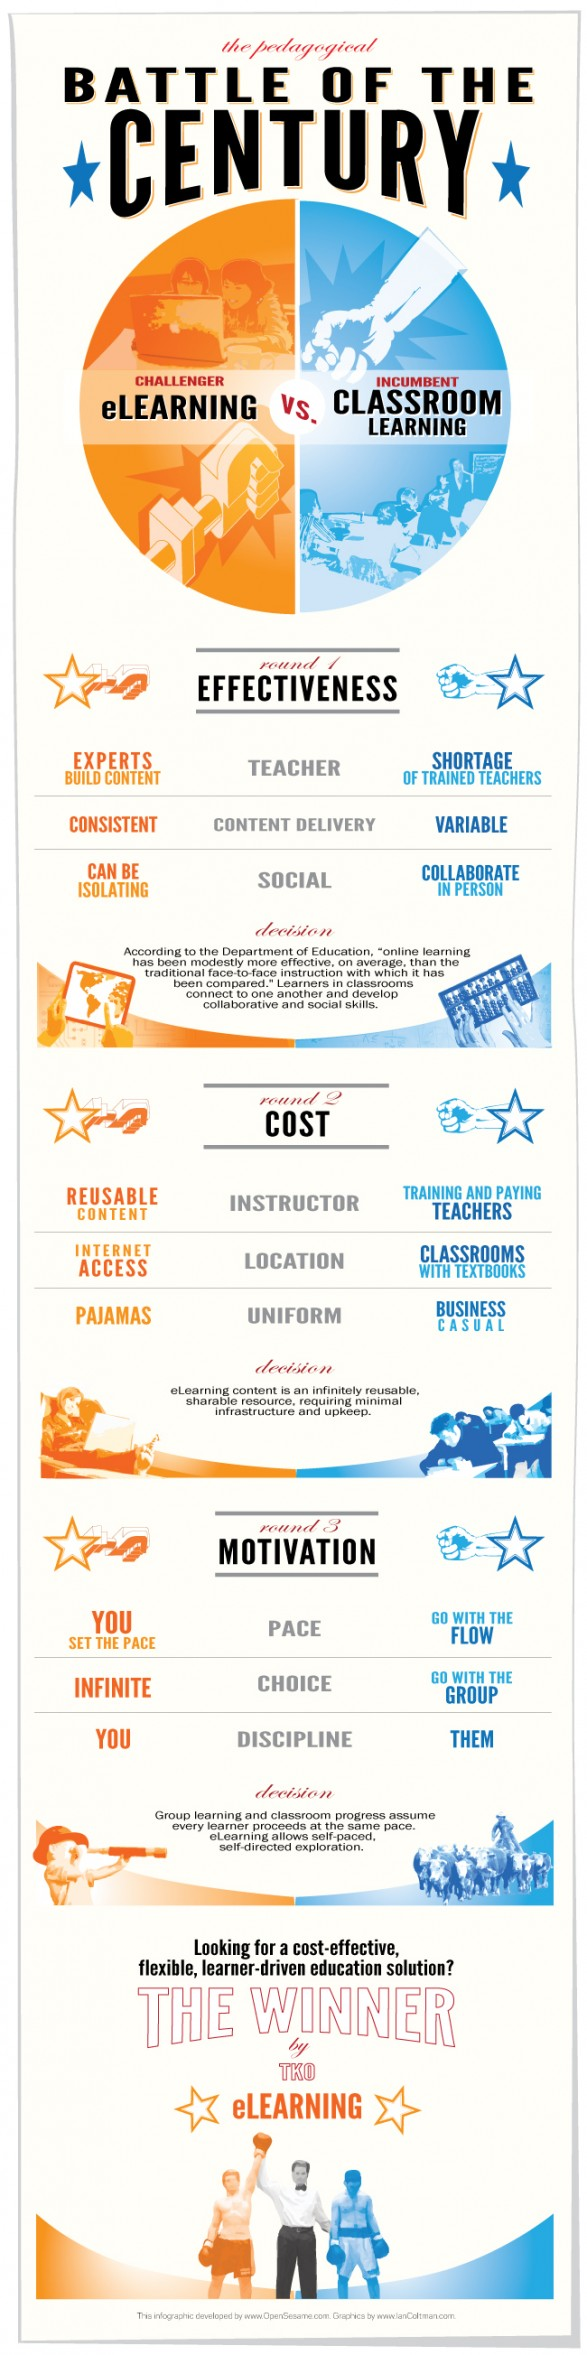 Thesis Essay Classroom Learning Traditional Classroom Learning Is Compared With New  Elearning Options Effectiveness Cost And Motivation Involved In Each  Program Are  Computer Science Essay Topics also Essay Topics For Research Paper Battle Of The Century Elearning Vs Classroom Learning  Universal Health Care Essay